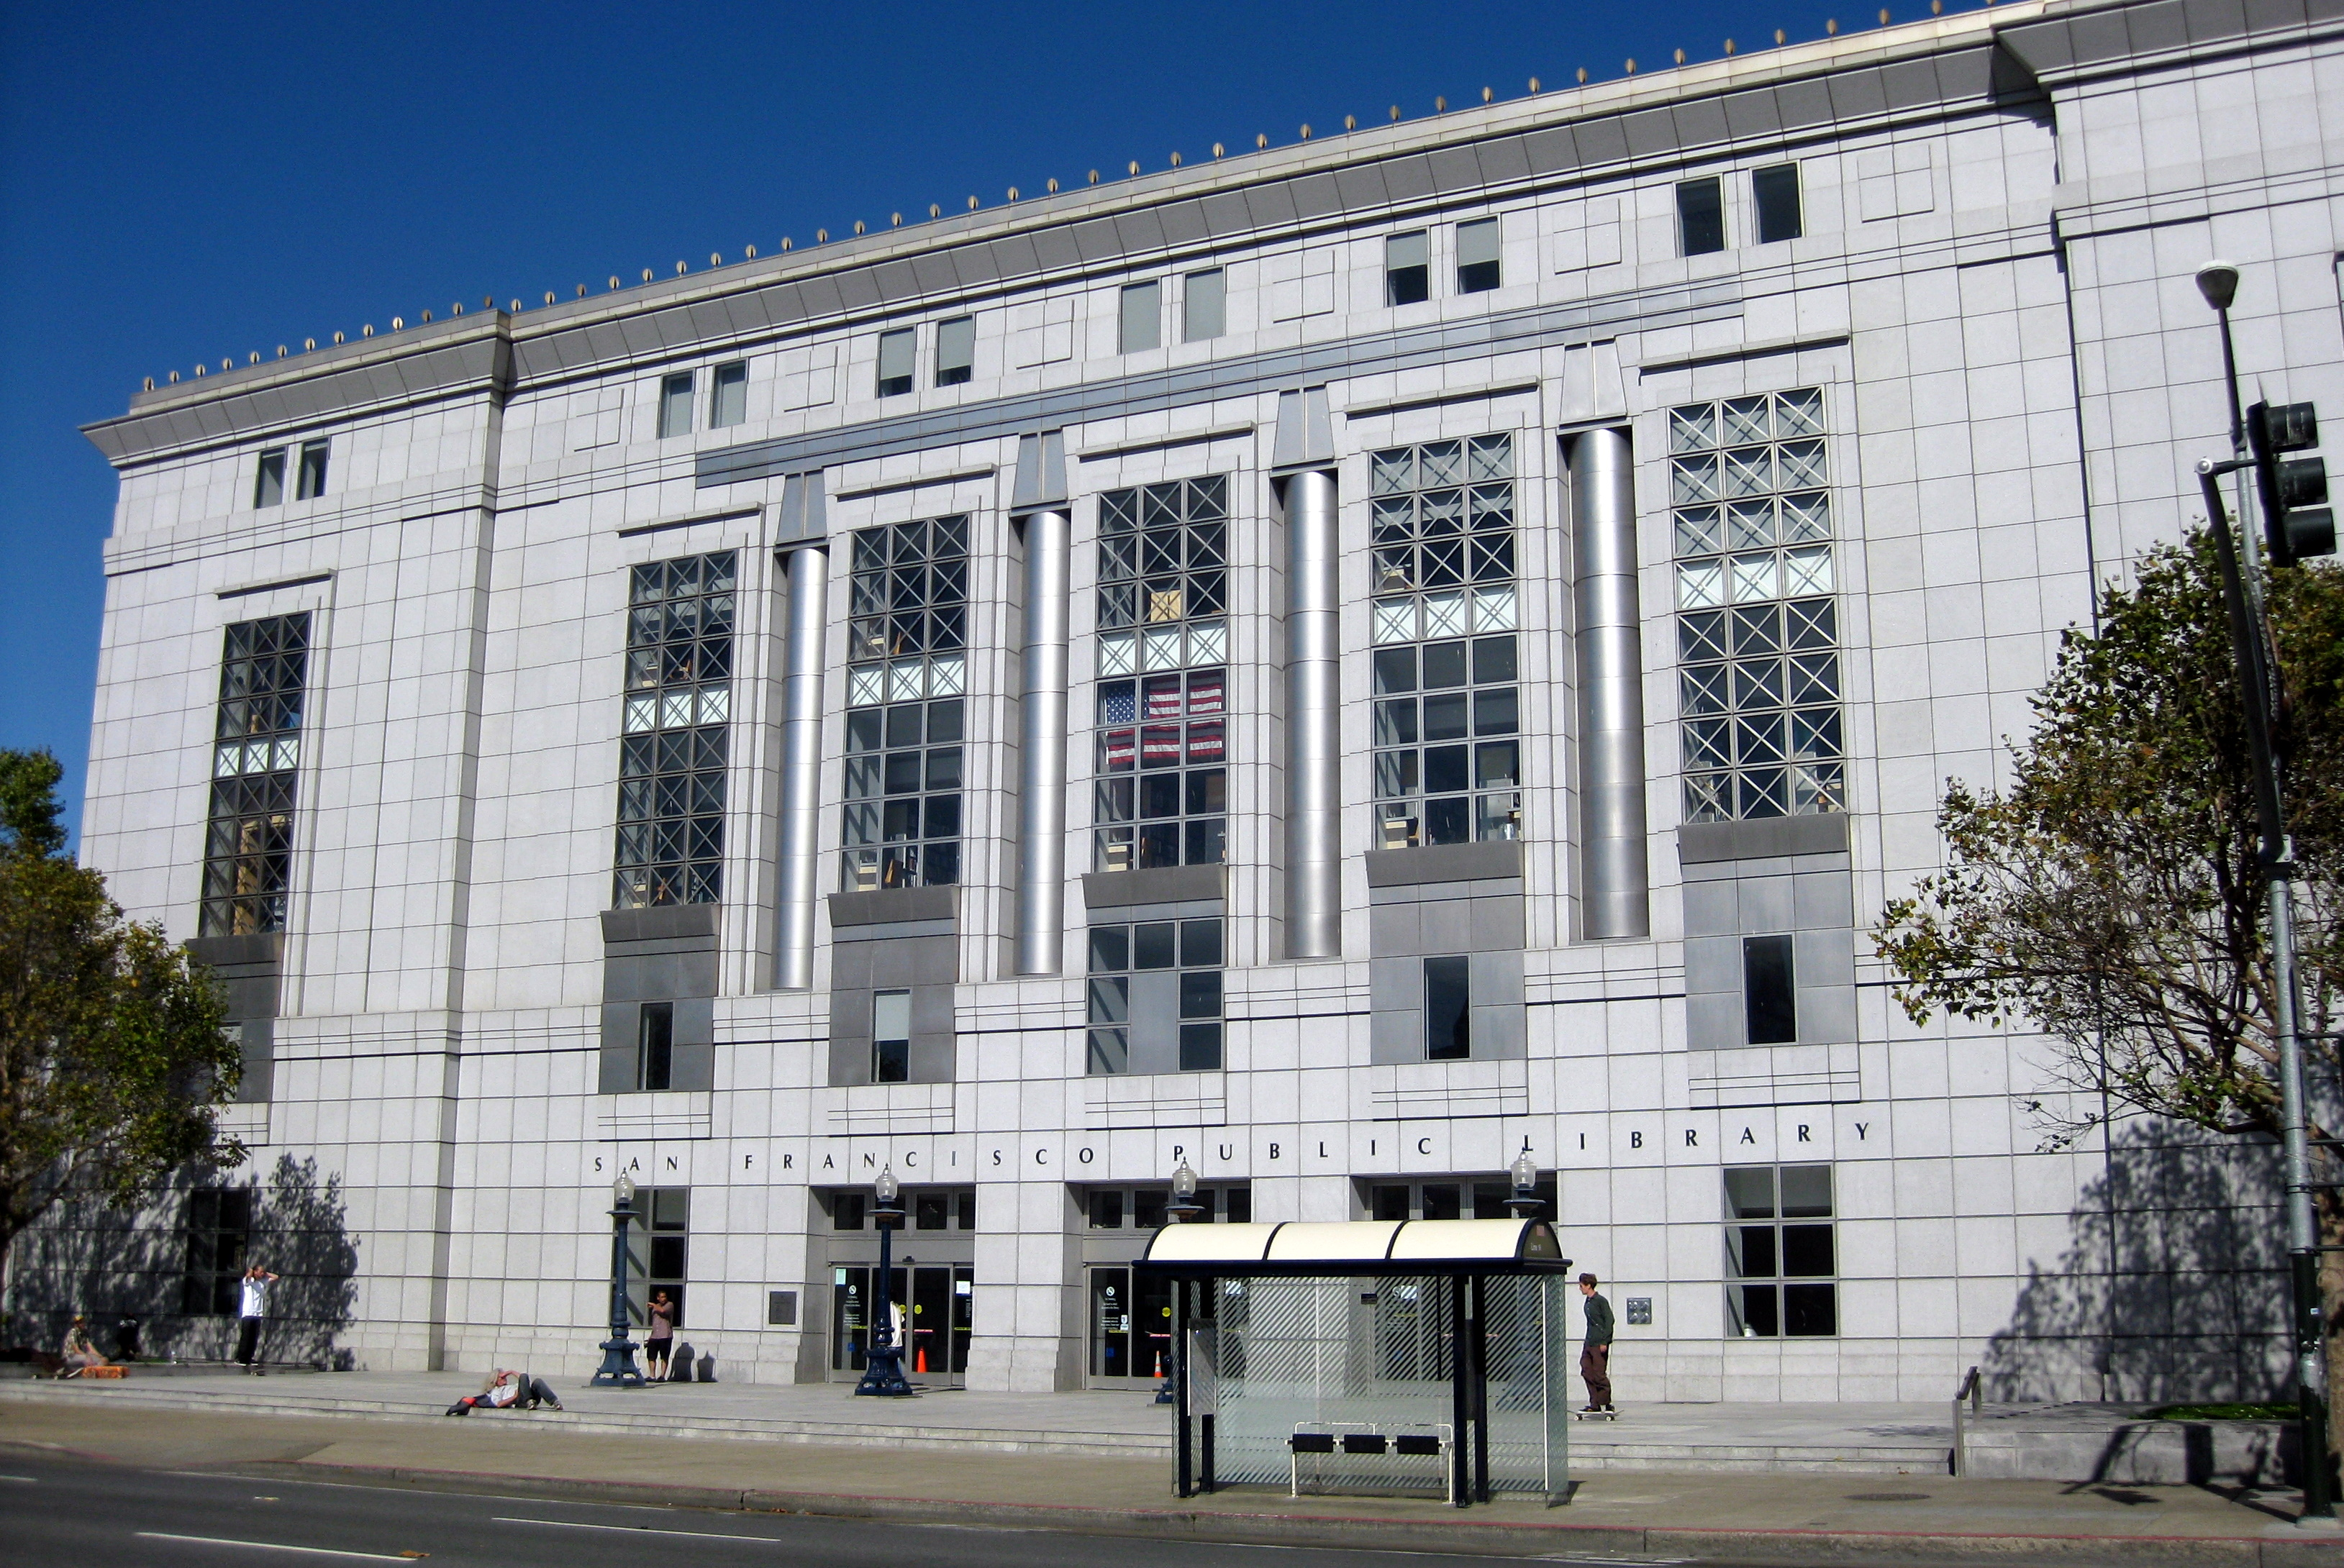 san francisco library Friends of the san francisco public library is a member-supported, nonprofit organization that fundraises, advocates and works with partners and volunteers to provide.